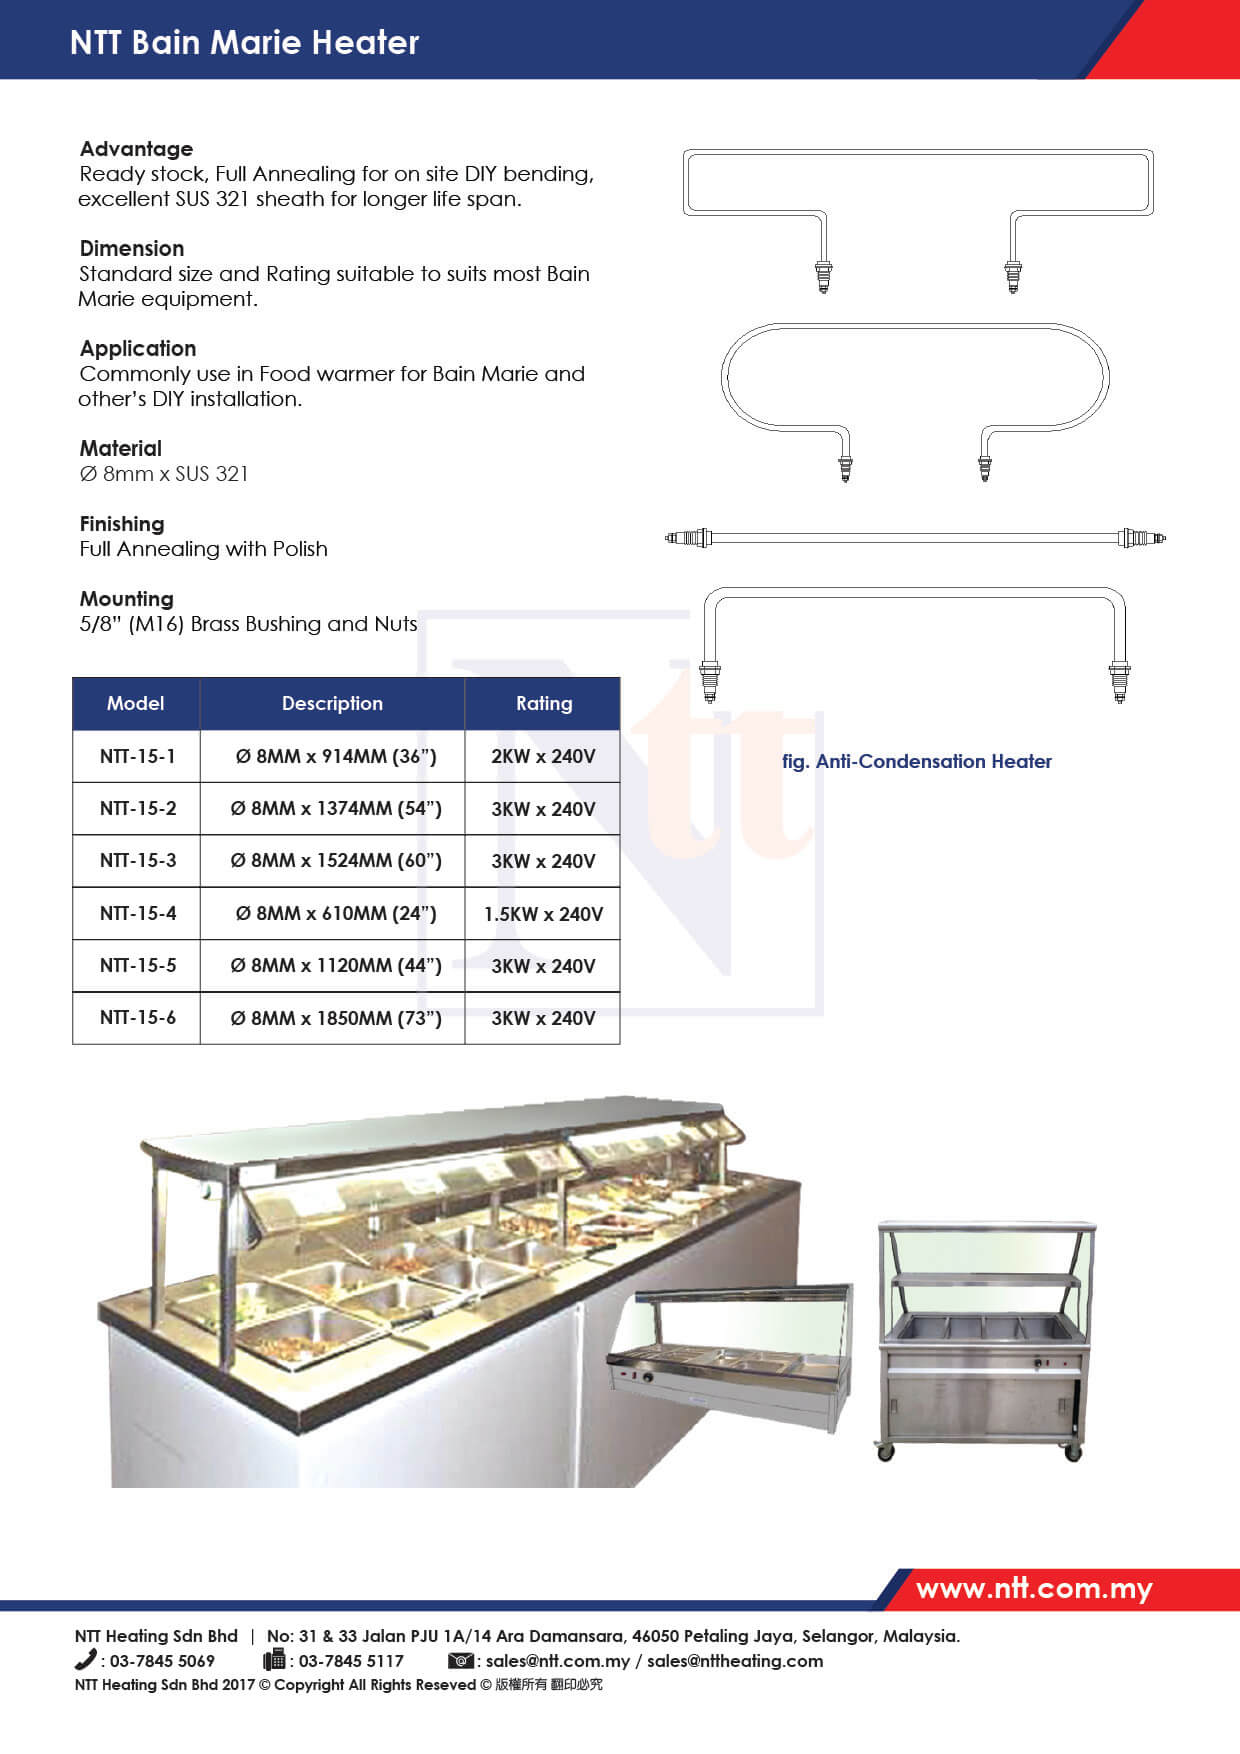 Food Warmer Wiring Diagram Simple Electrical Apw Wyott Diagrams Ntt Bain Marie Heater Heating Sdn Bhd Dryer